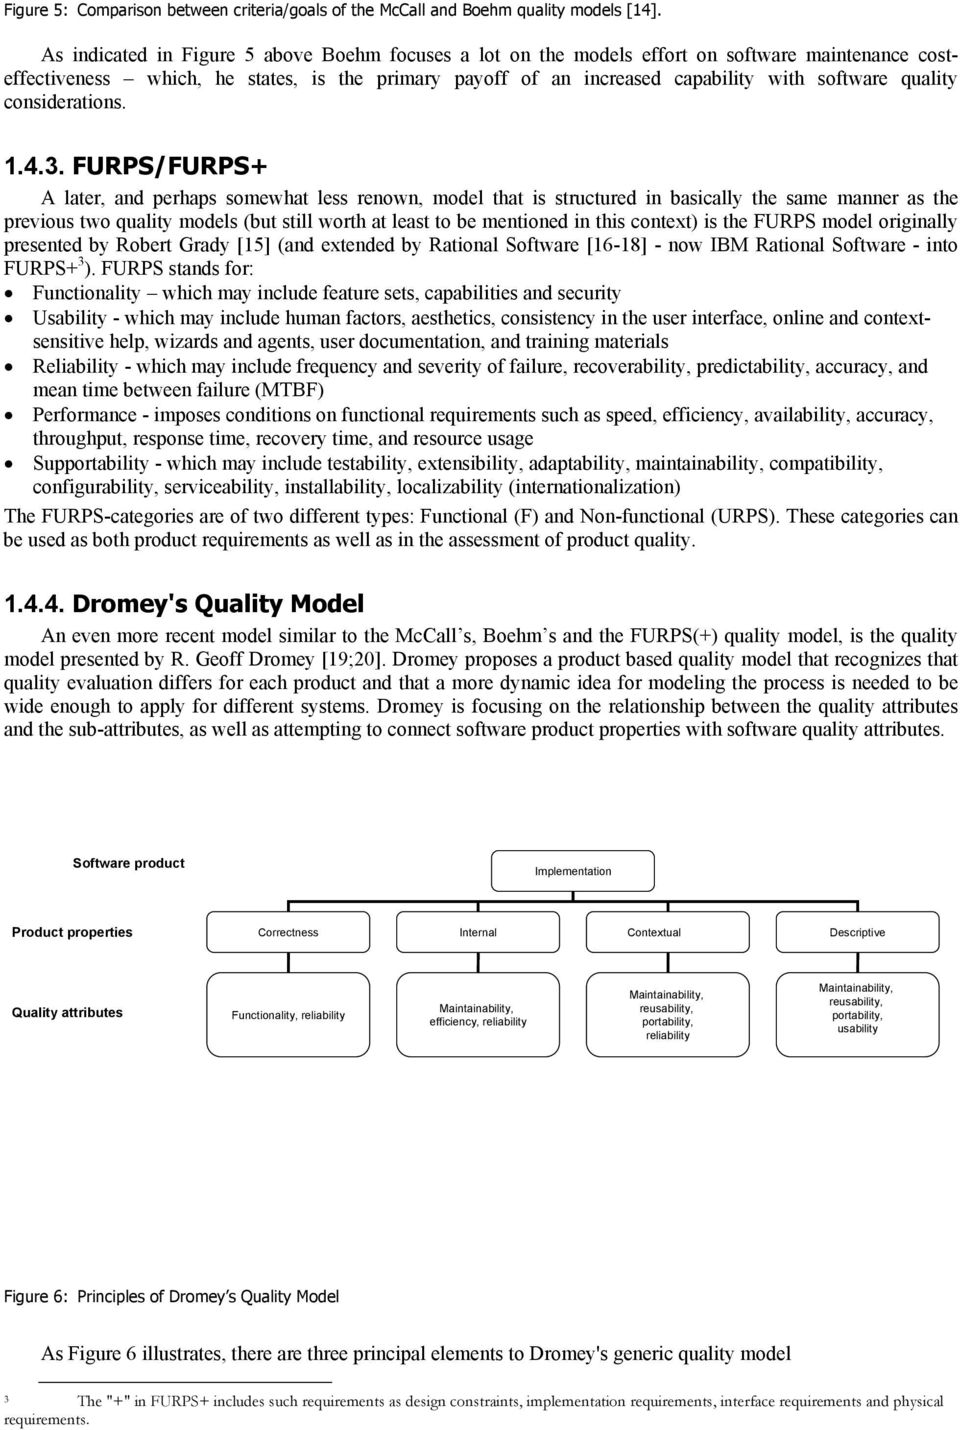 Software quality attributes and trade-offs - PDF